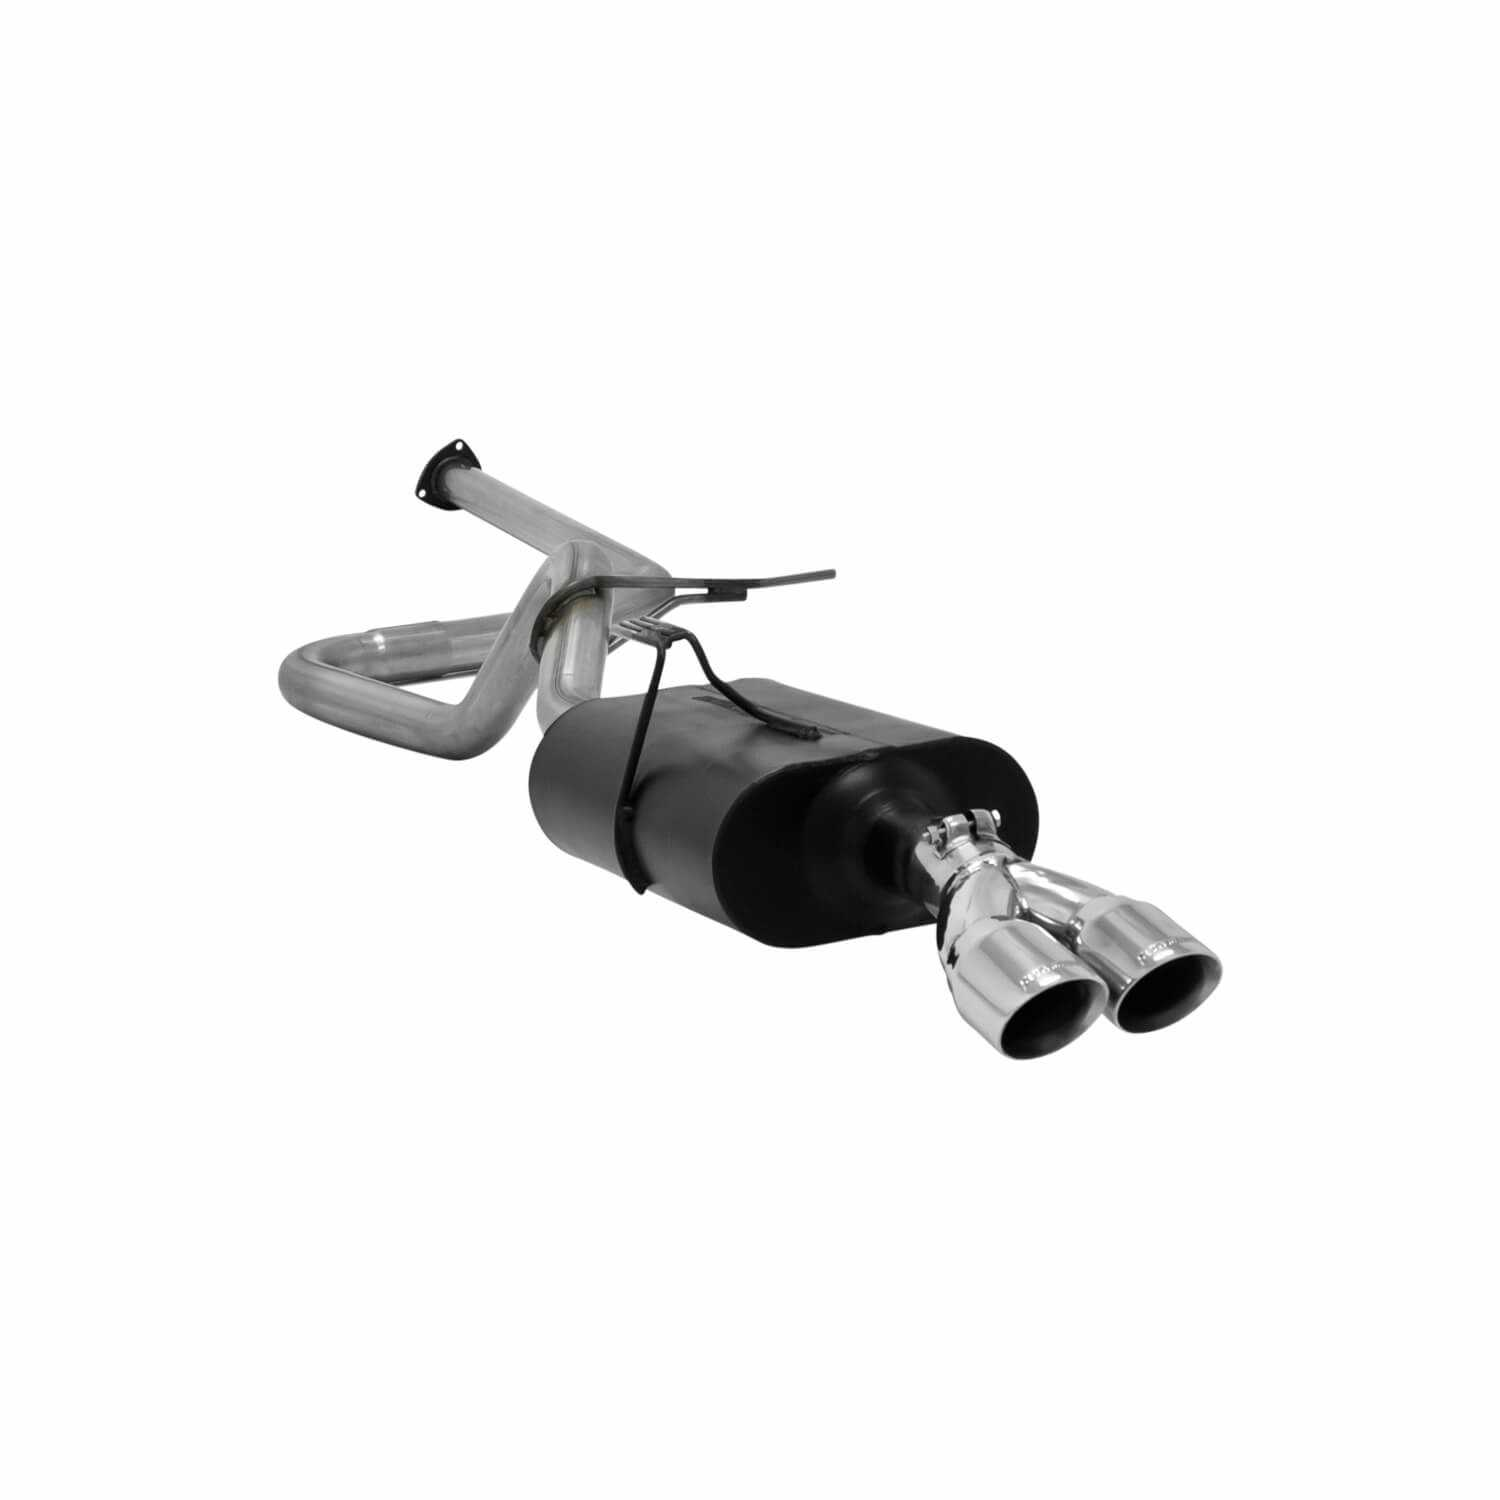 817606 Flowmaster American Thunder Cat Back Exhaust System